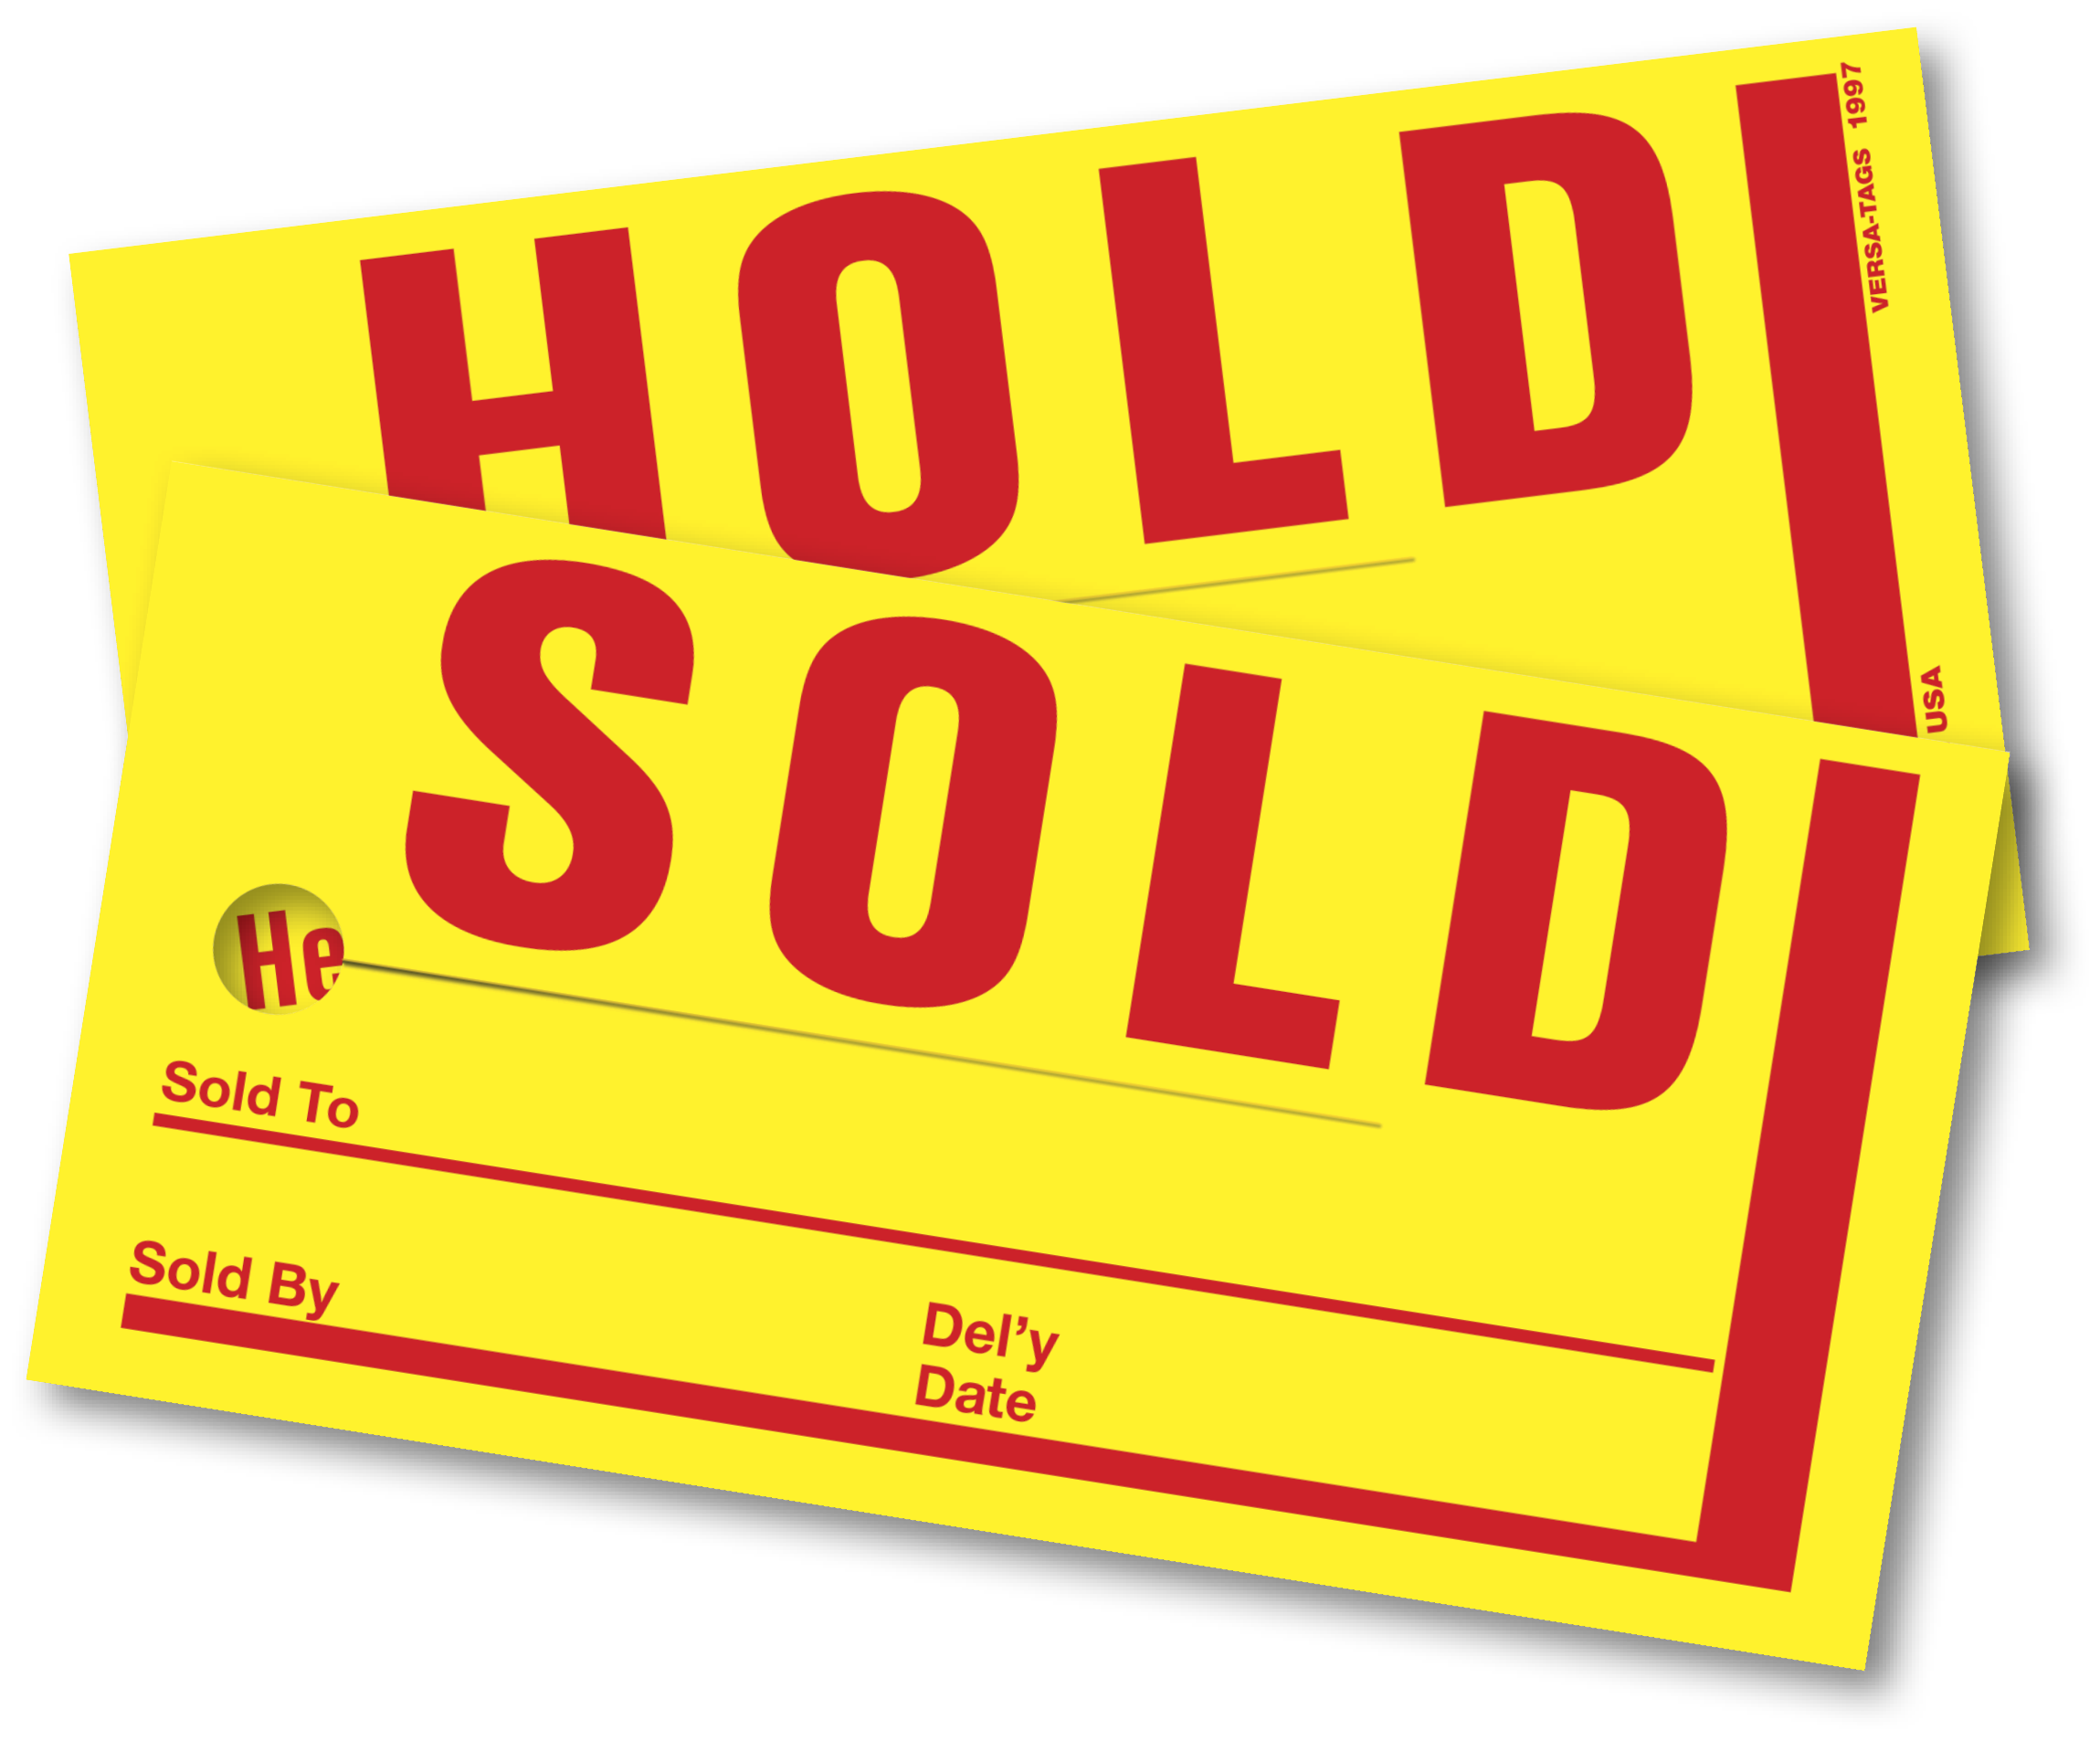 SOLD HOLD TAGS (4 in. x 8 in.)